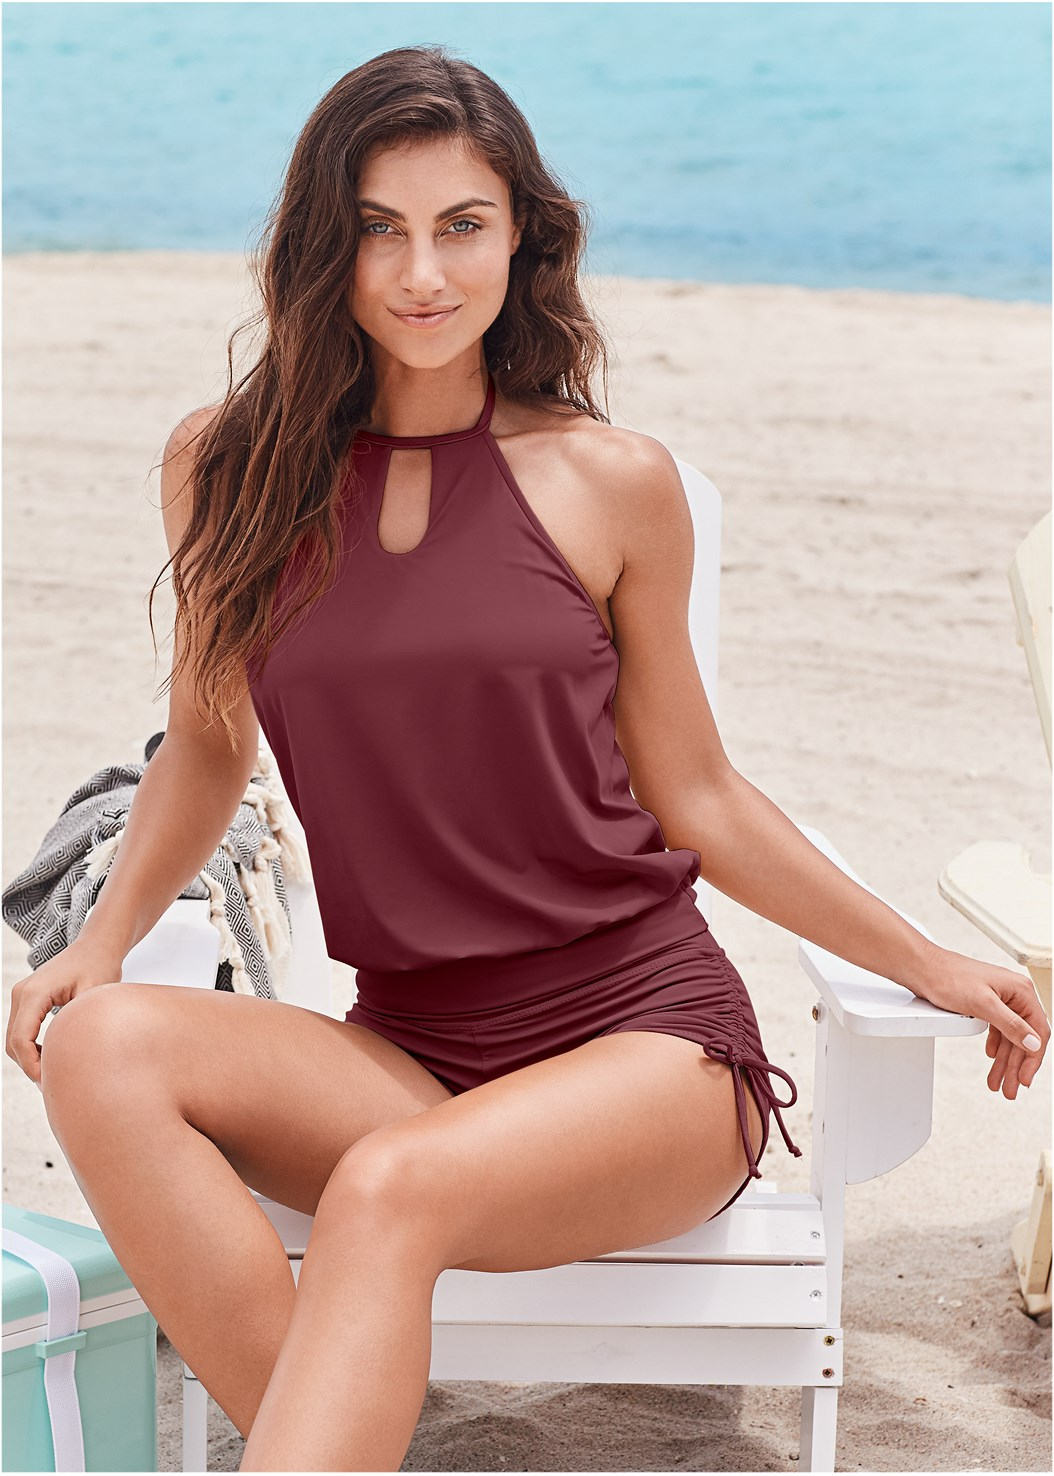 High Neck Blouson Tankini Top,Adjustable Side Swim Short,Mid Rise Hipster Classic Bikini Bottom,Mid Rise Swim Skirt Bikini Bottom,Lace Kimono Cover-Up,Circular Straw Bag